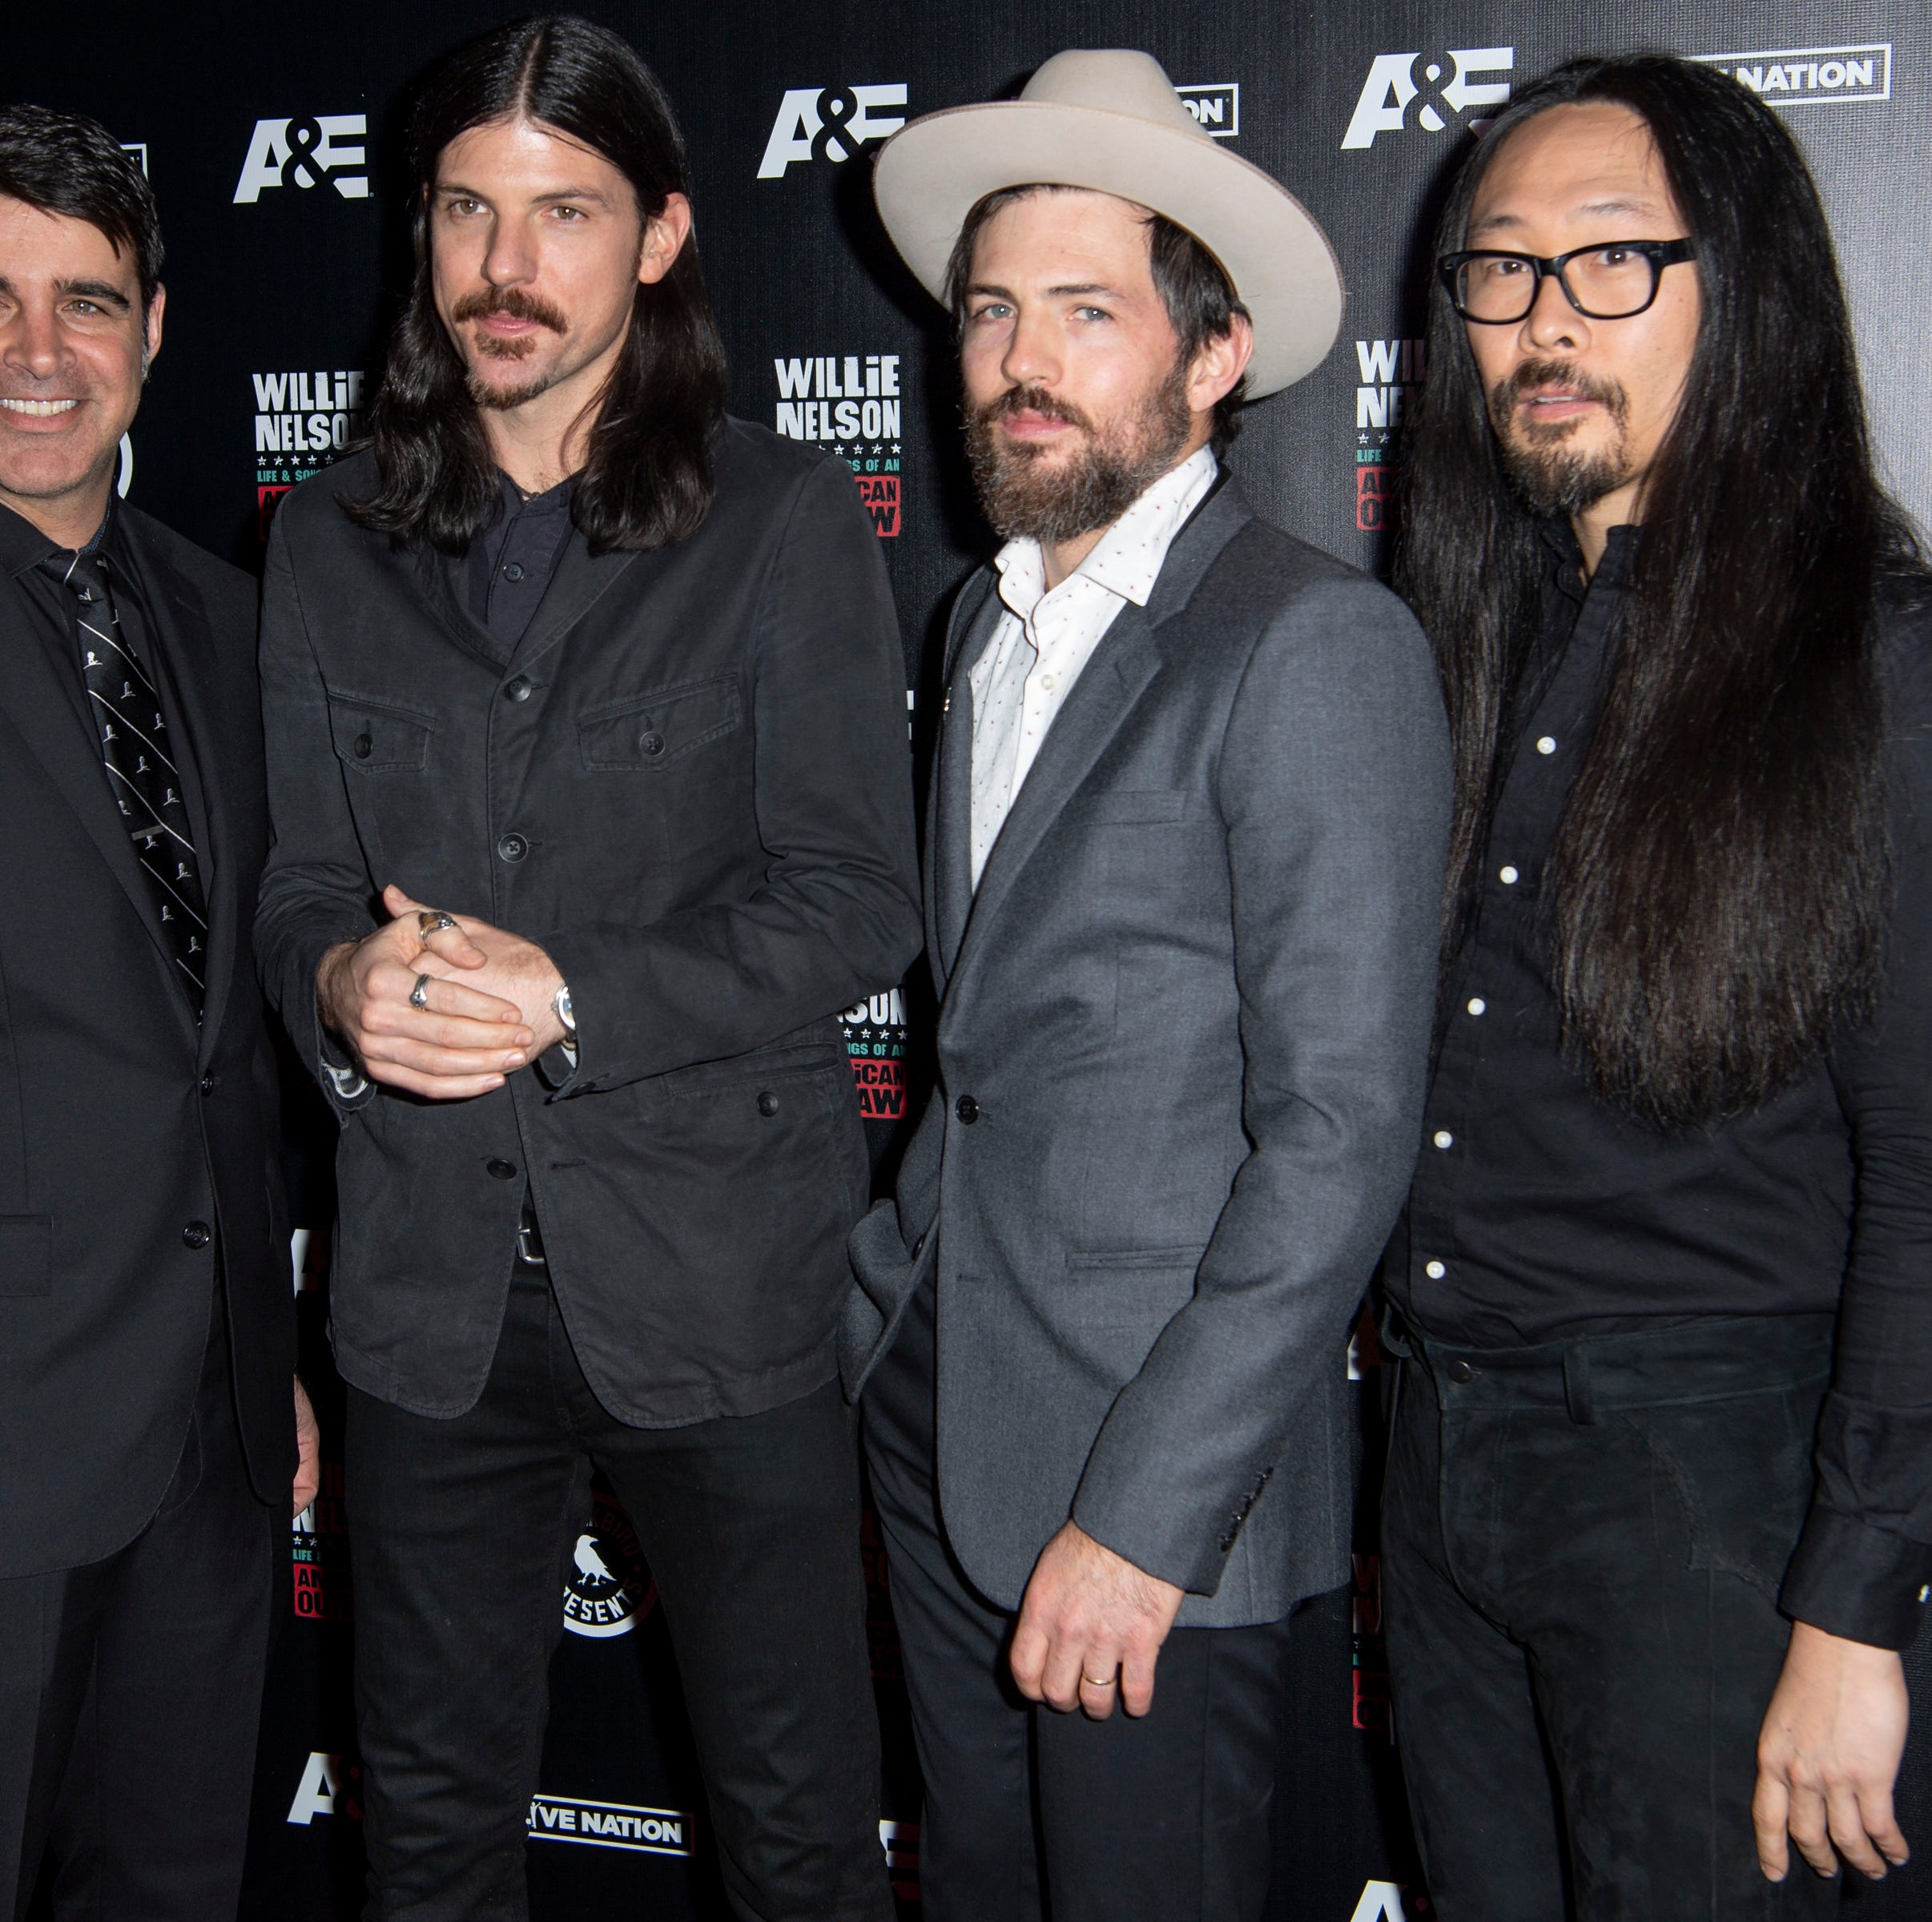 The Avett Brothers set to play the Tucker Center this March